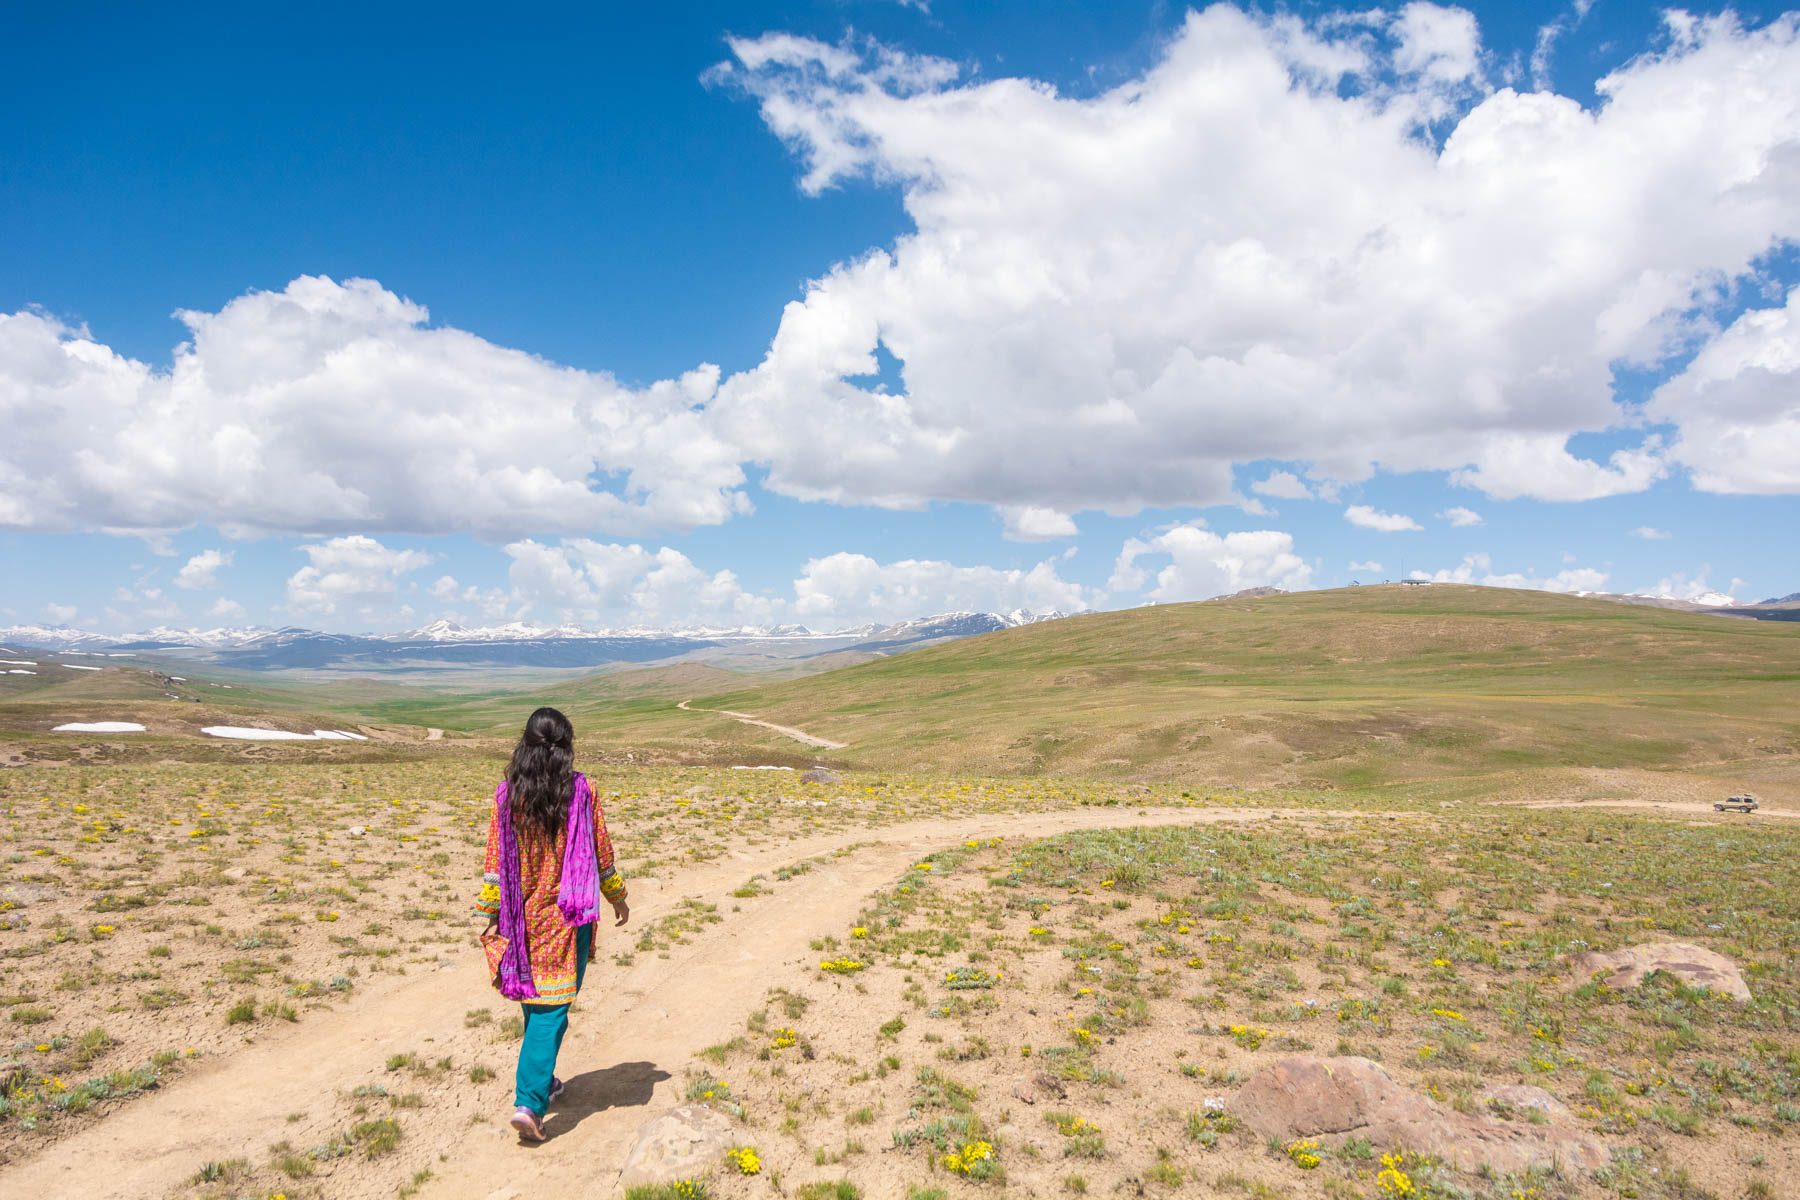 Walking in shalwaar kameez in the Deosai Plains of Pakistan